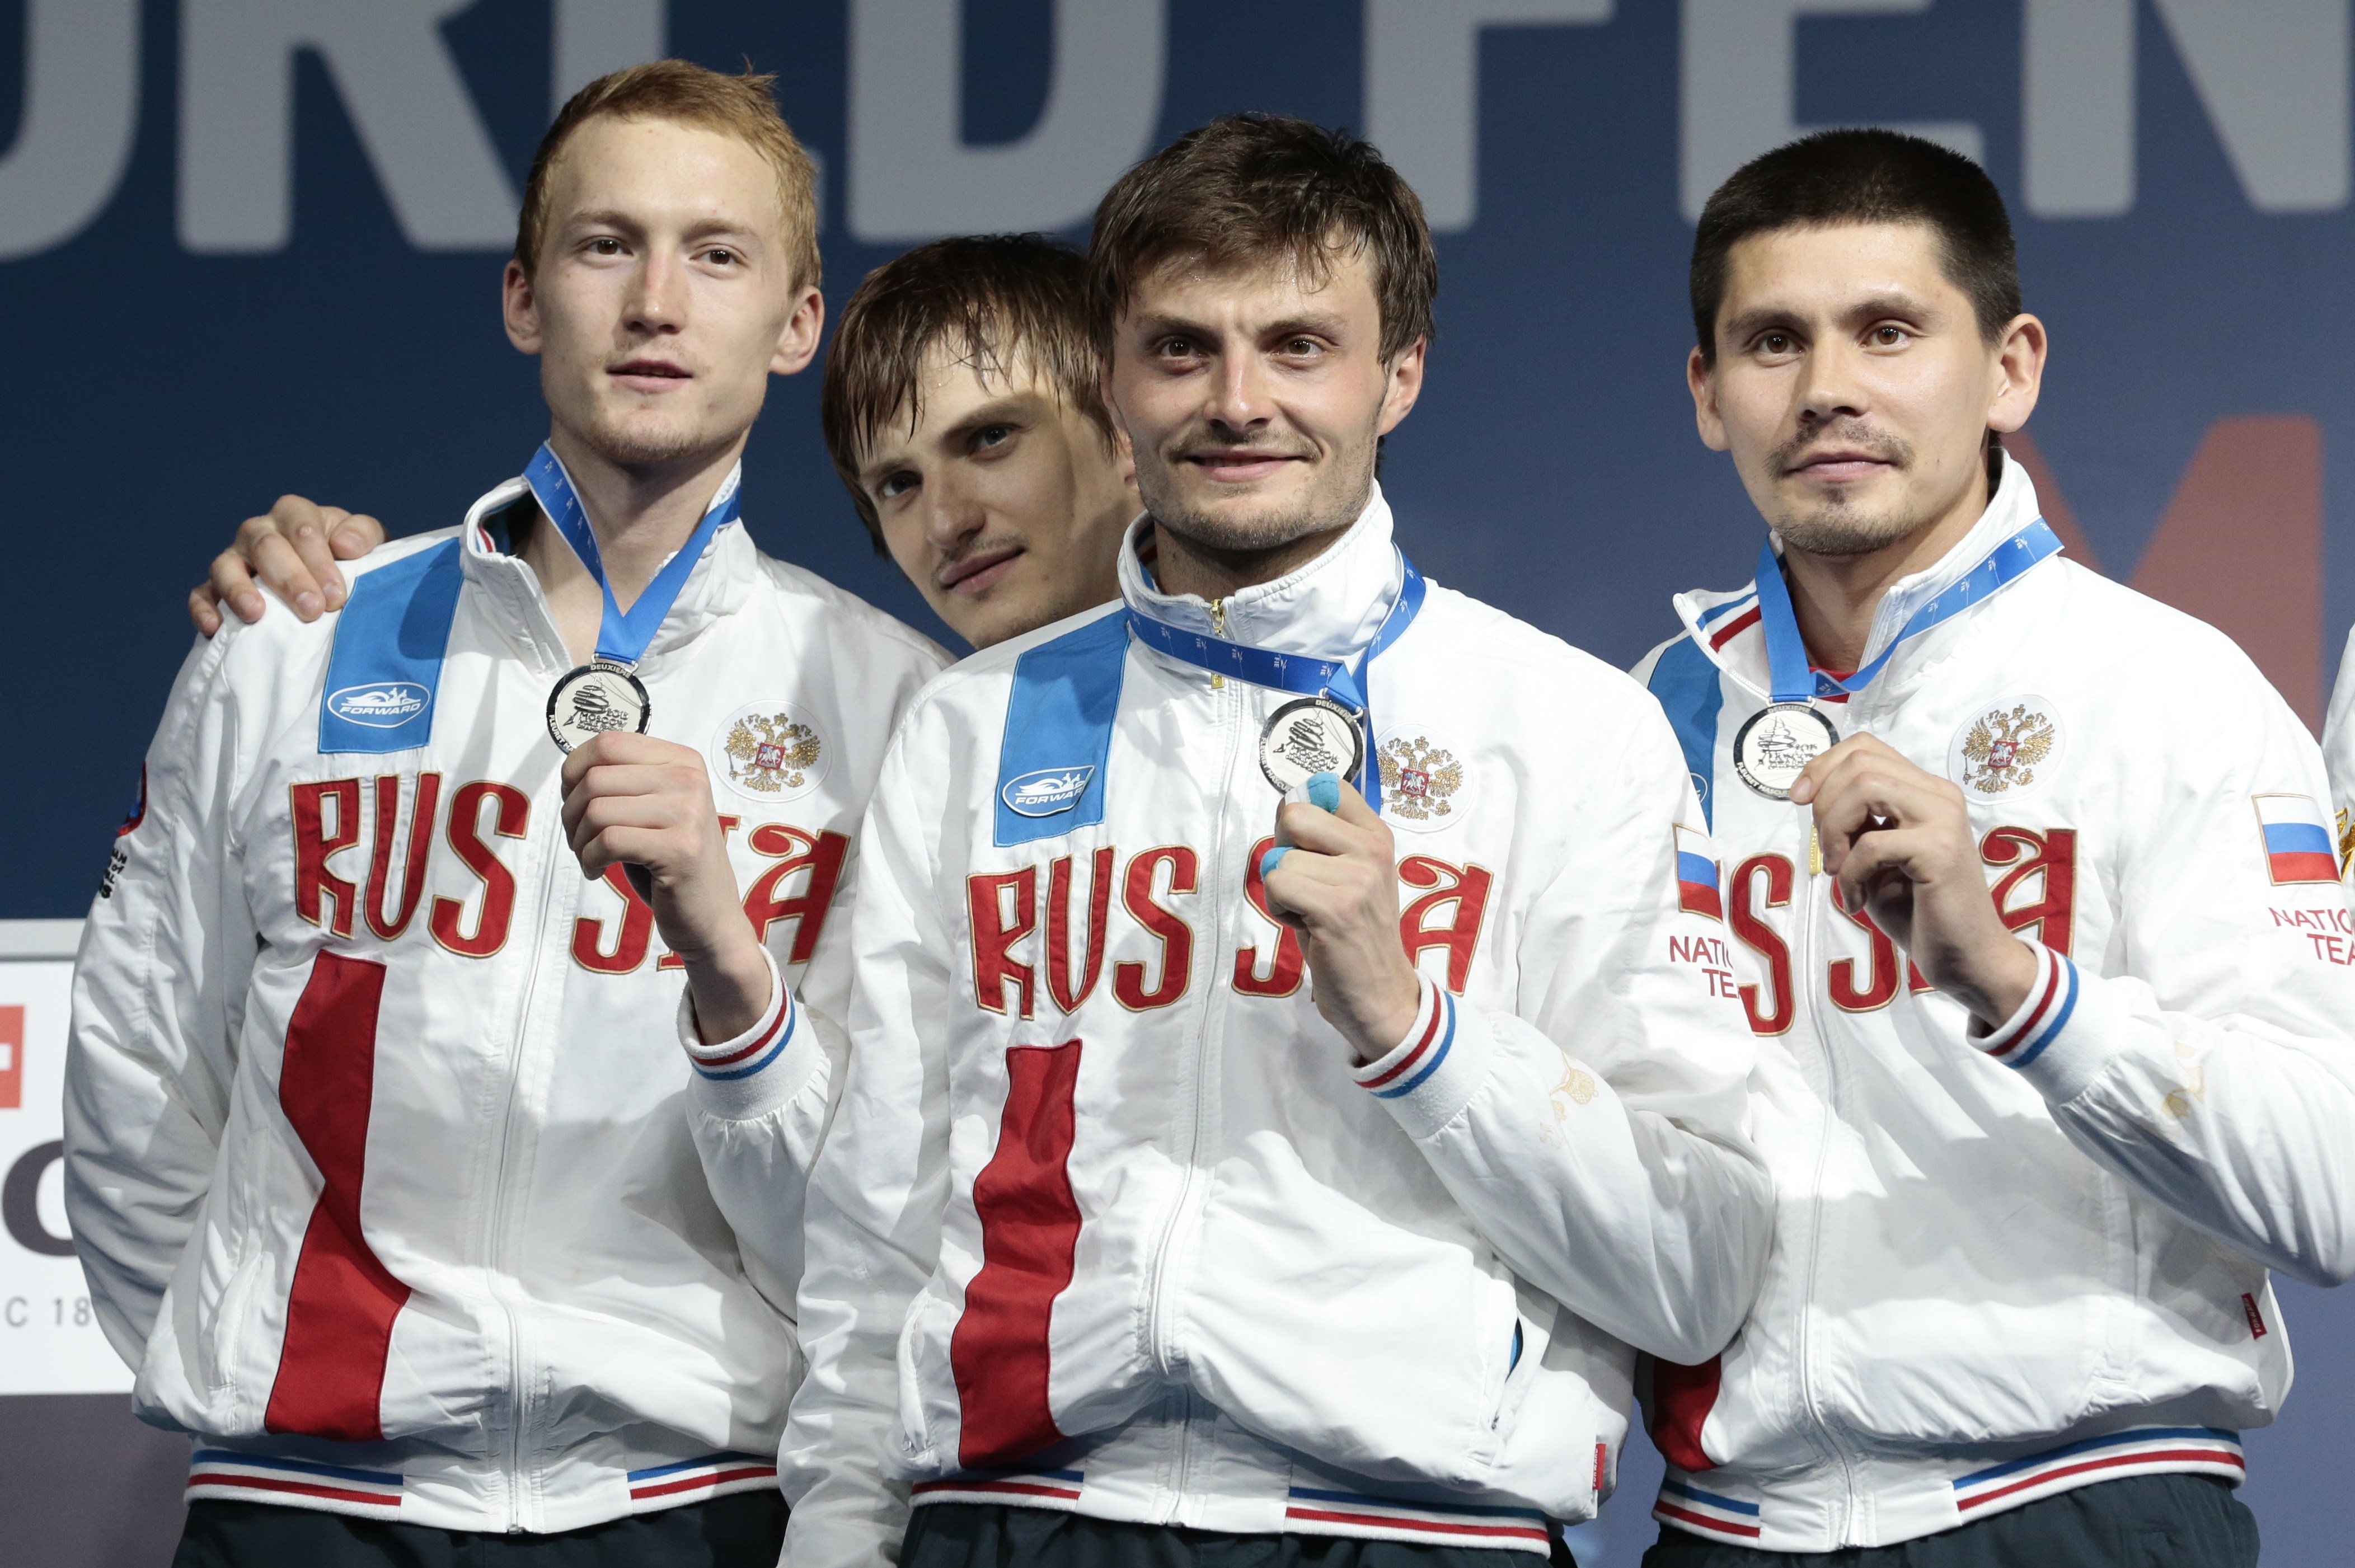 Russia team members show off their silver medals after men's team foil competition at the fencing World championships in Moscow, Russia, on Sunday, July 19, 2015. Italy won the gold, Russia took the silver and China got the bronze. (AP Photo/Ivan Sekretar